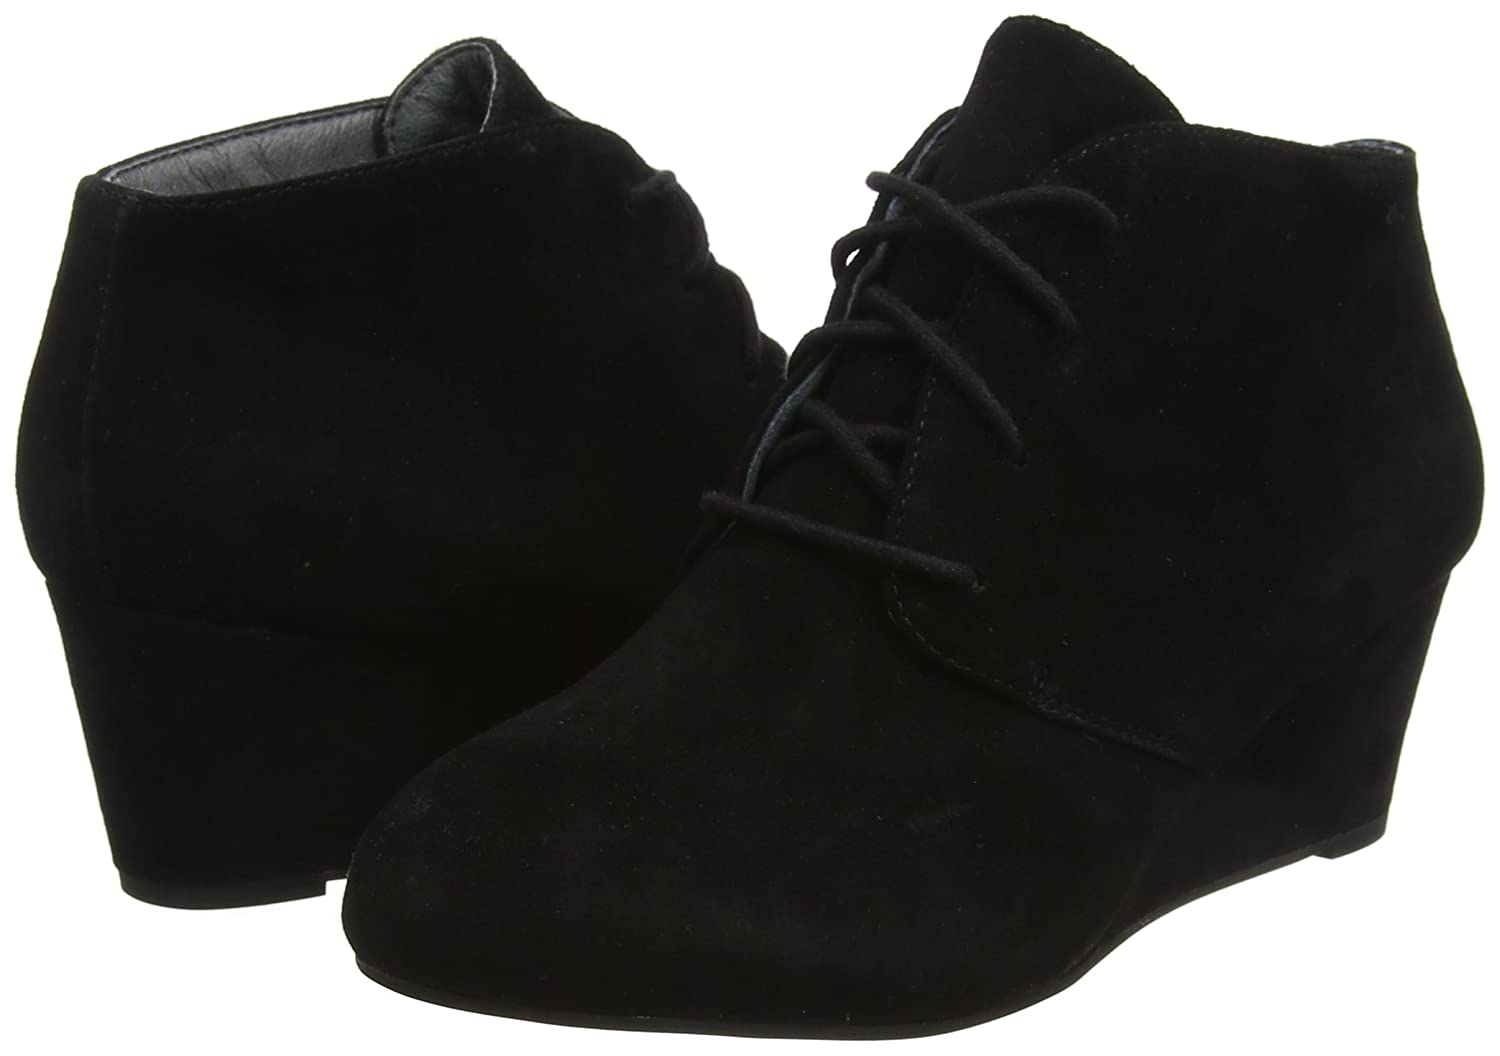 Vionic Womens Elevated Becca Wedge Lace-Up B018TQVHZS 7.5 B(M) US|Black